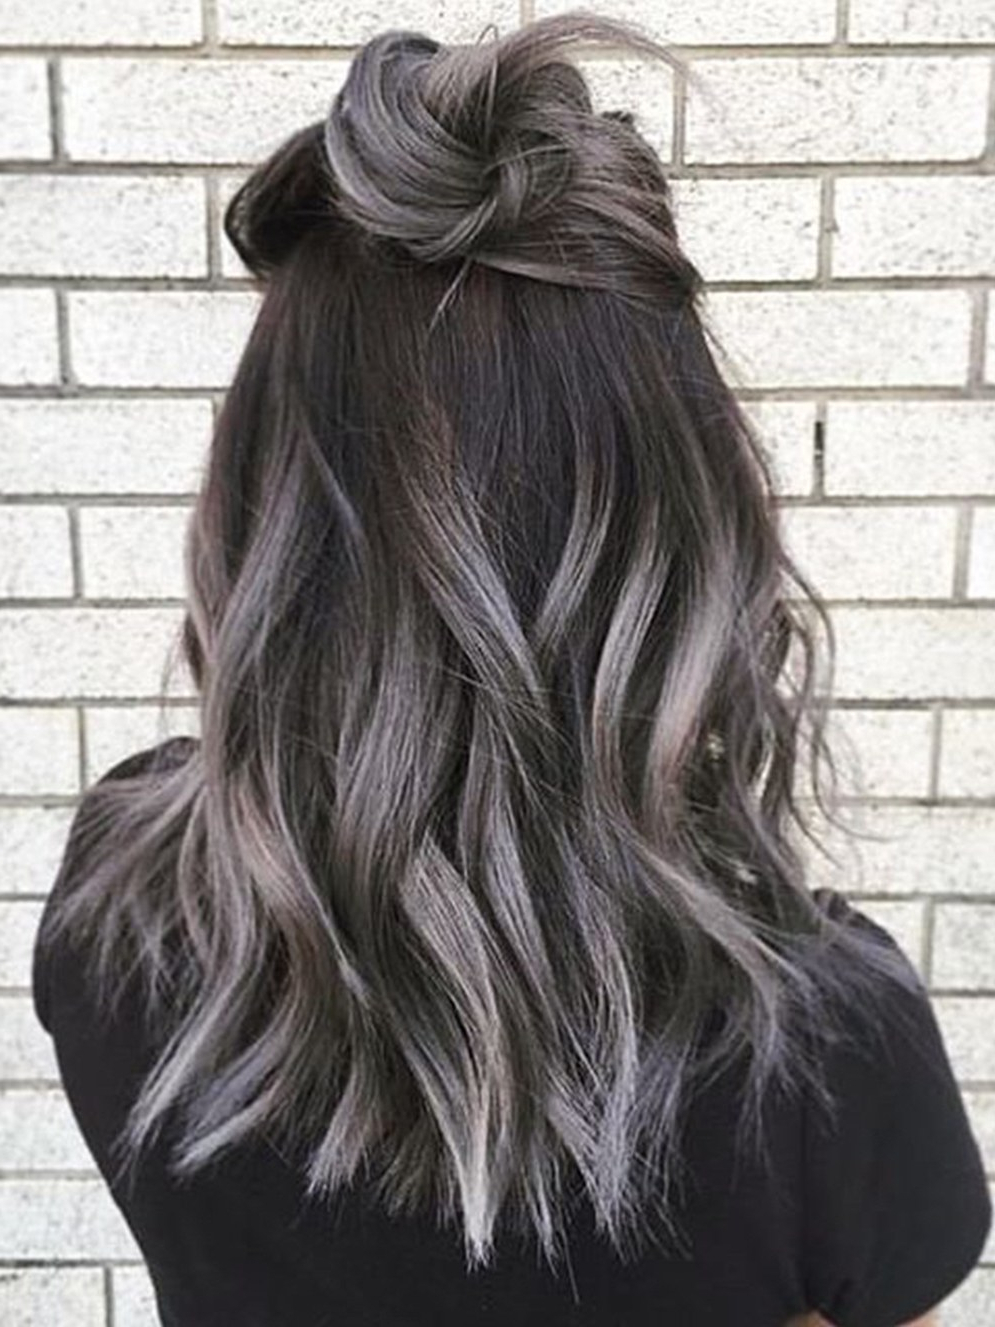 Current Medium Hairstyles For Women With Gray Hair Intended For The Gray Hair Trend: 32 Instagram Worthy Gray Ombré Hairstyles – Allure (View 12 of 20)